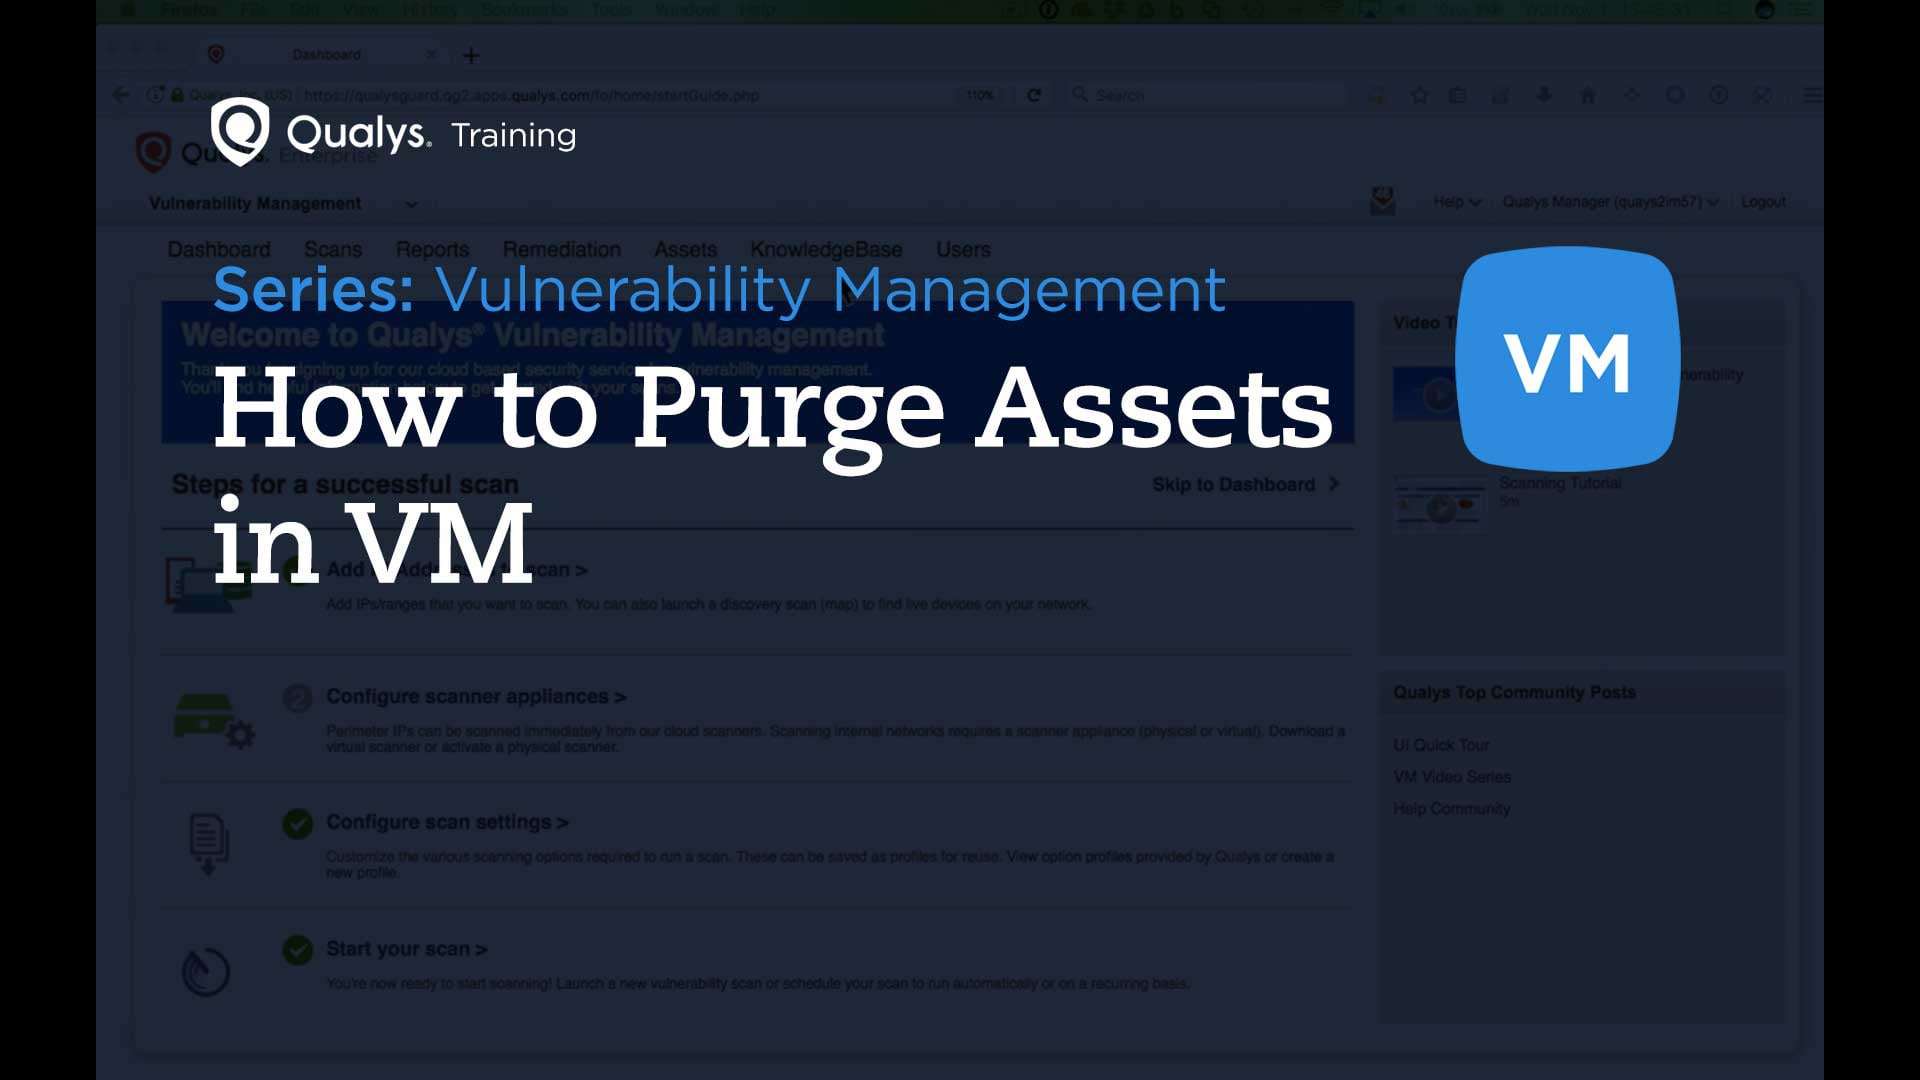 How to Purge Assets in VM